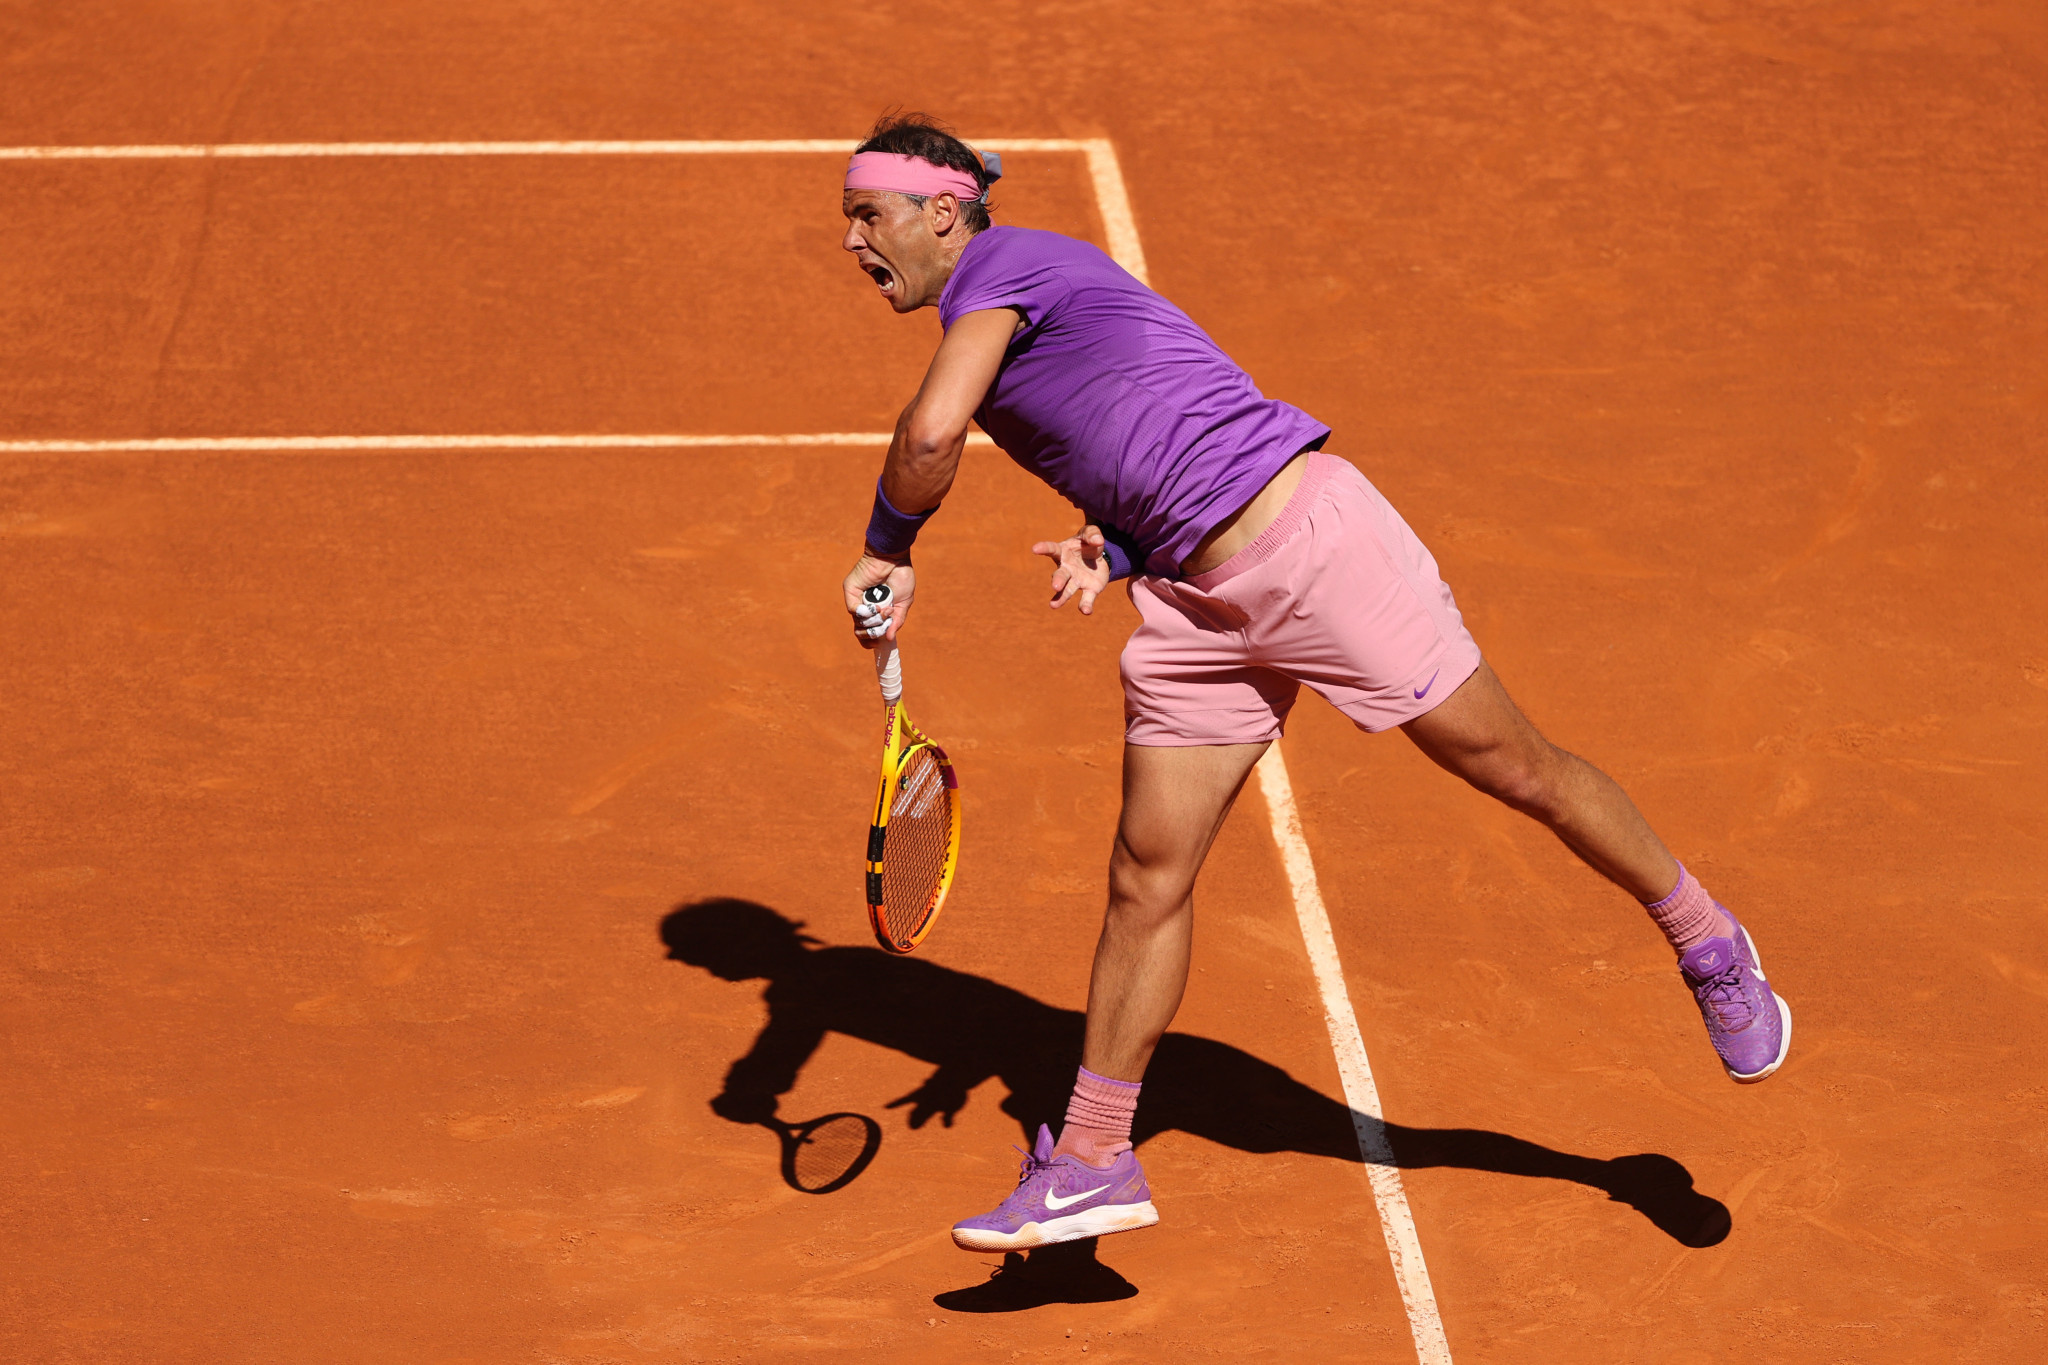 Top seeds Nadal and Barty among winners at Madrid Open